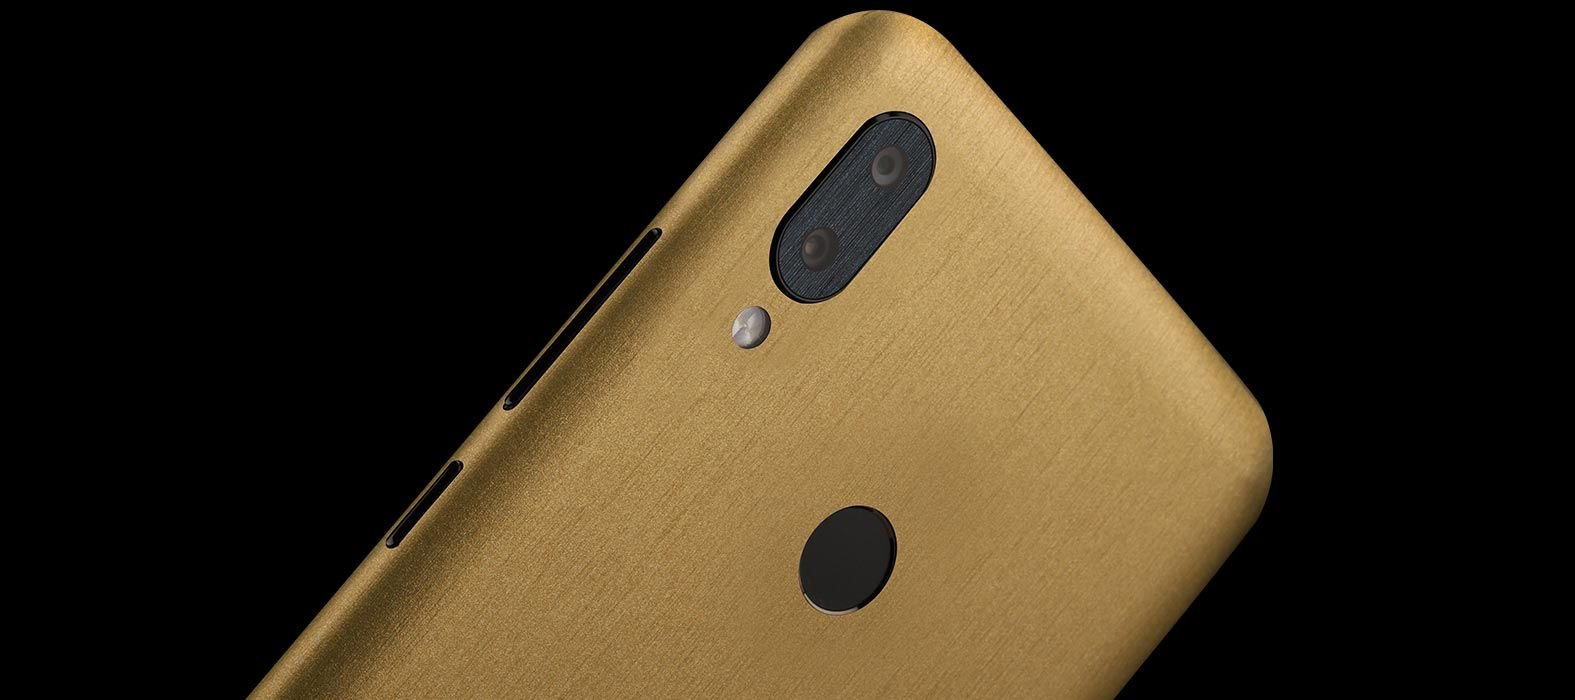 Redmi-note-7-pro_Brushed-Gold_Skins